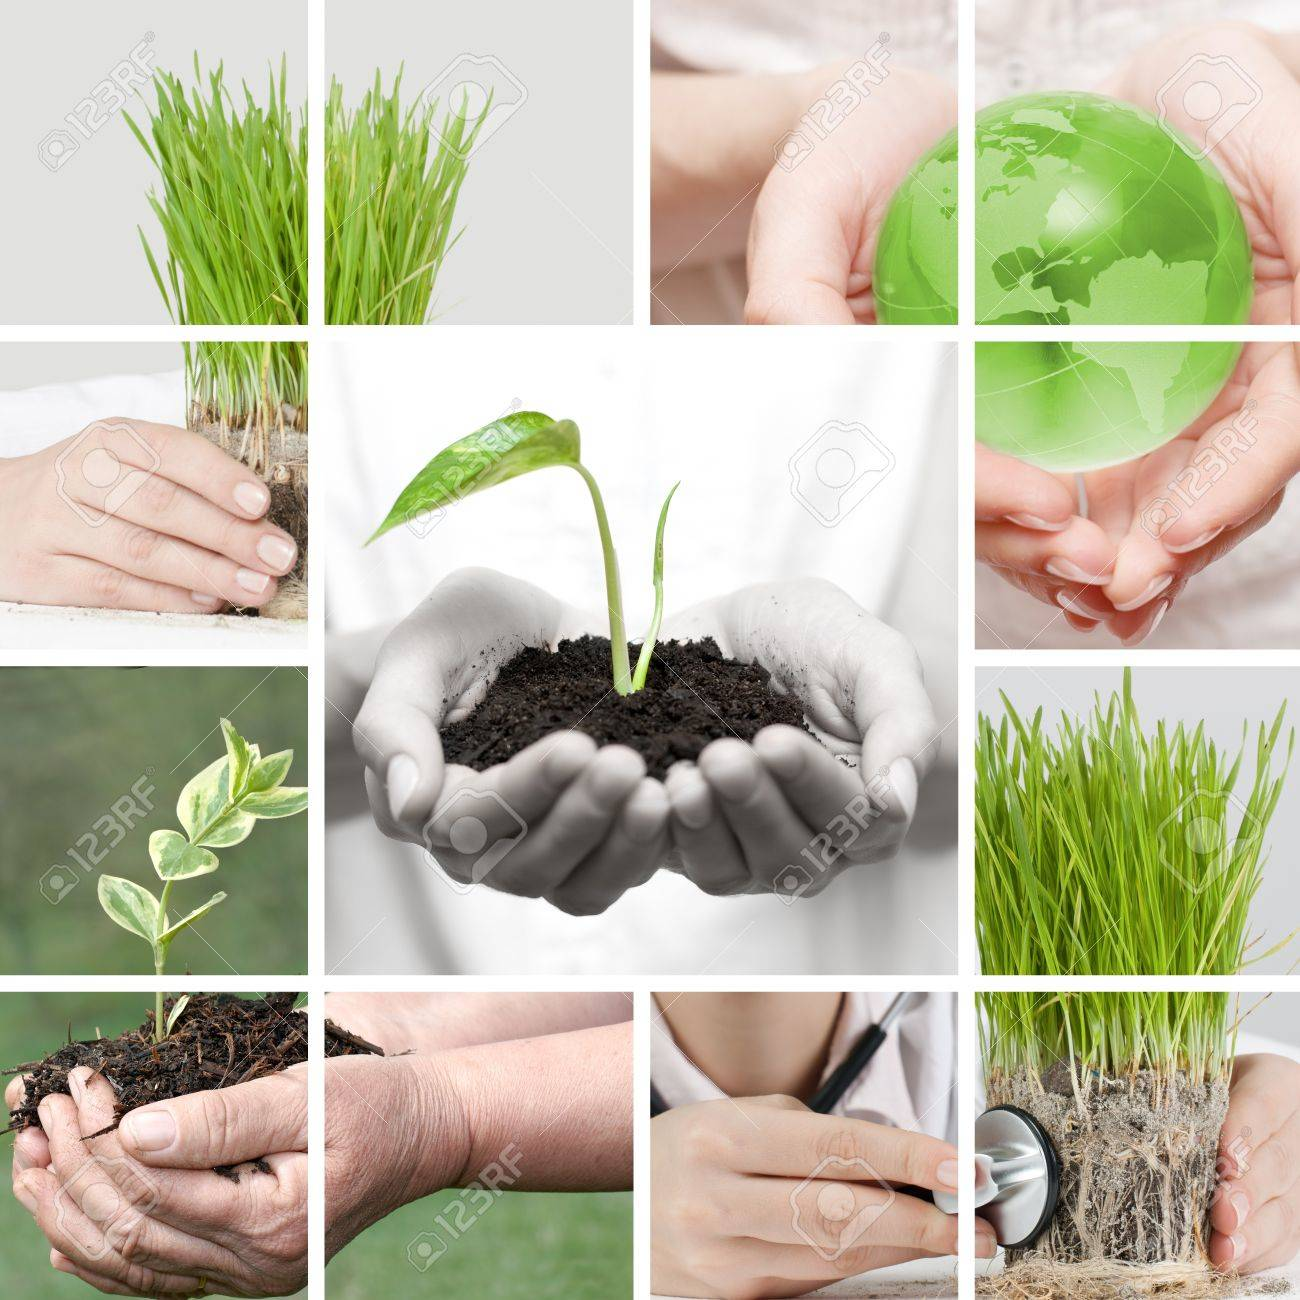 New life collage by human hands take care about nature. Stock Photo - 9019544